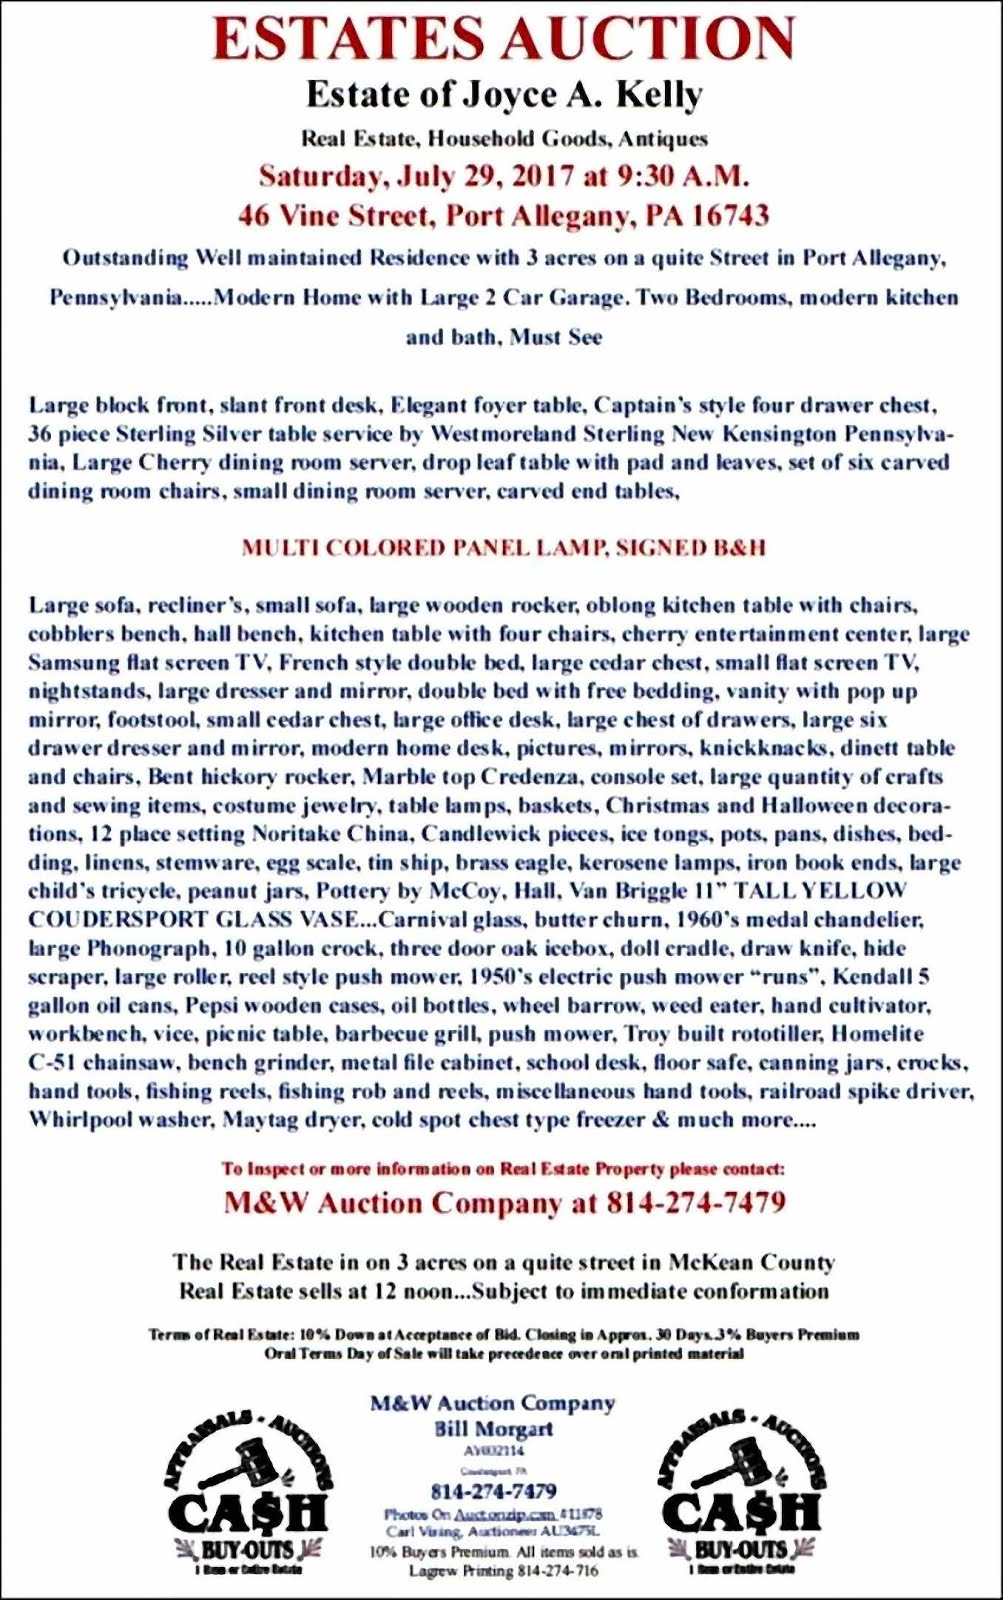 Joyce A. Kelly Estate Auction